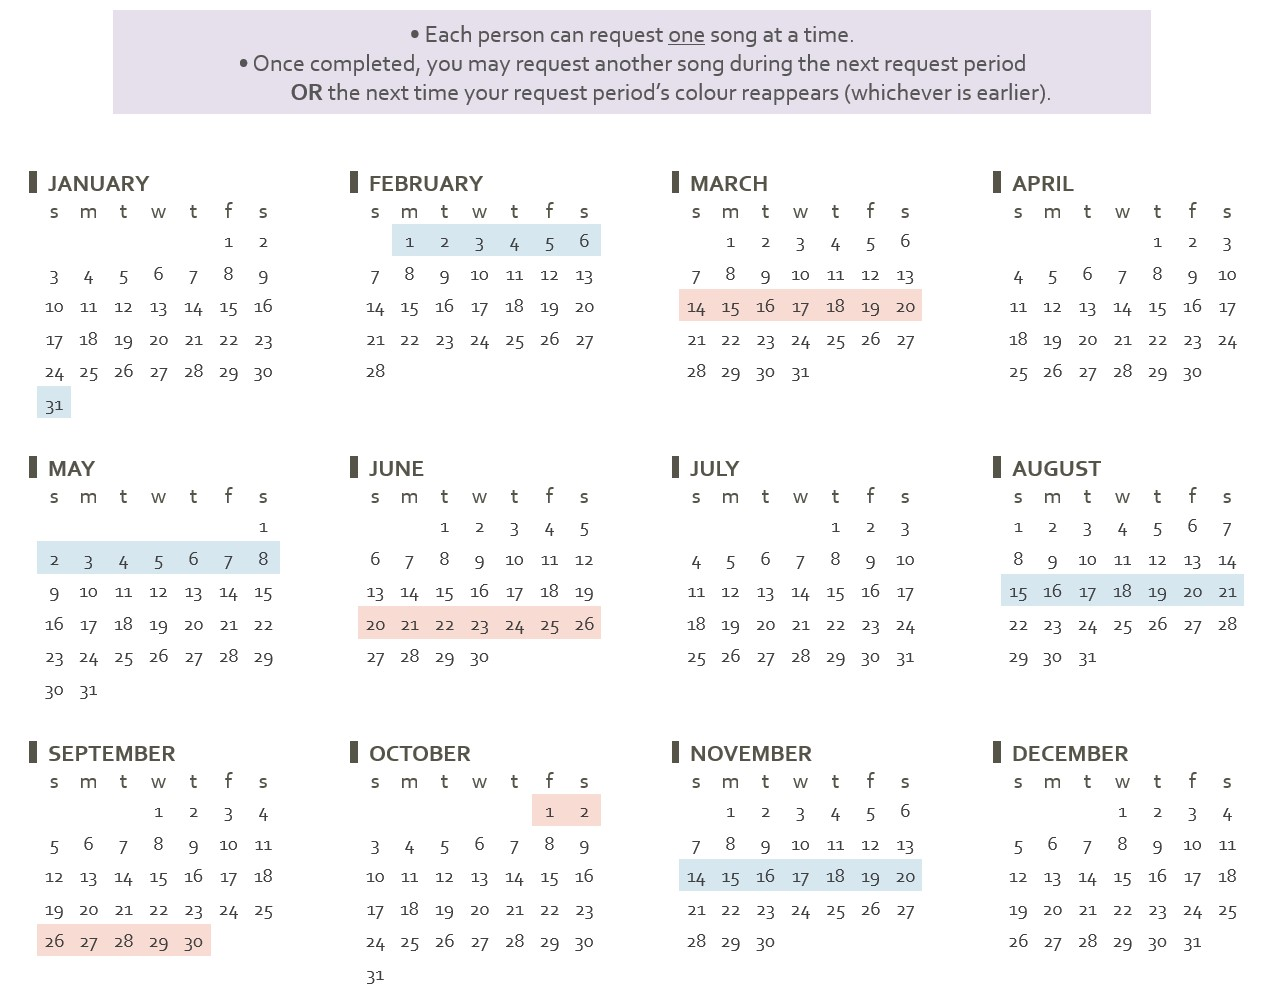 Displays request calendar for 2021. Requests are open 31 January to 6 February, 14 March to 20 March, 2 May to 8 May, 20 June to 26 June, 15 August to 21 August, 26 September to 2 October, and 14 November to 20 November.